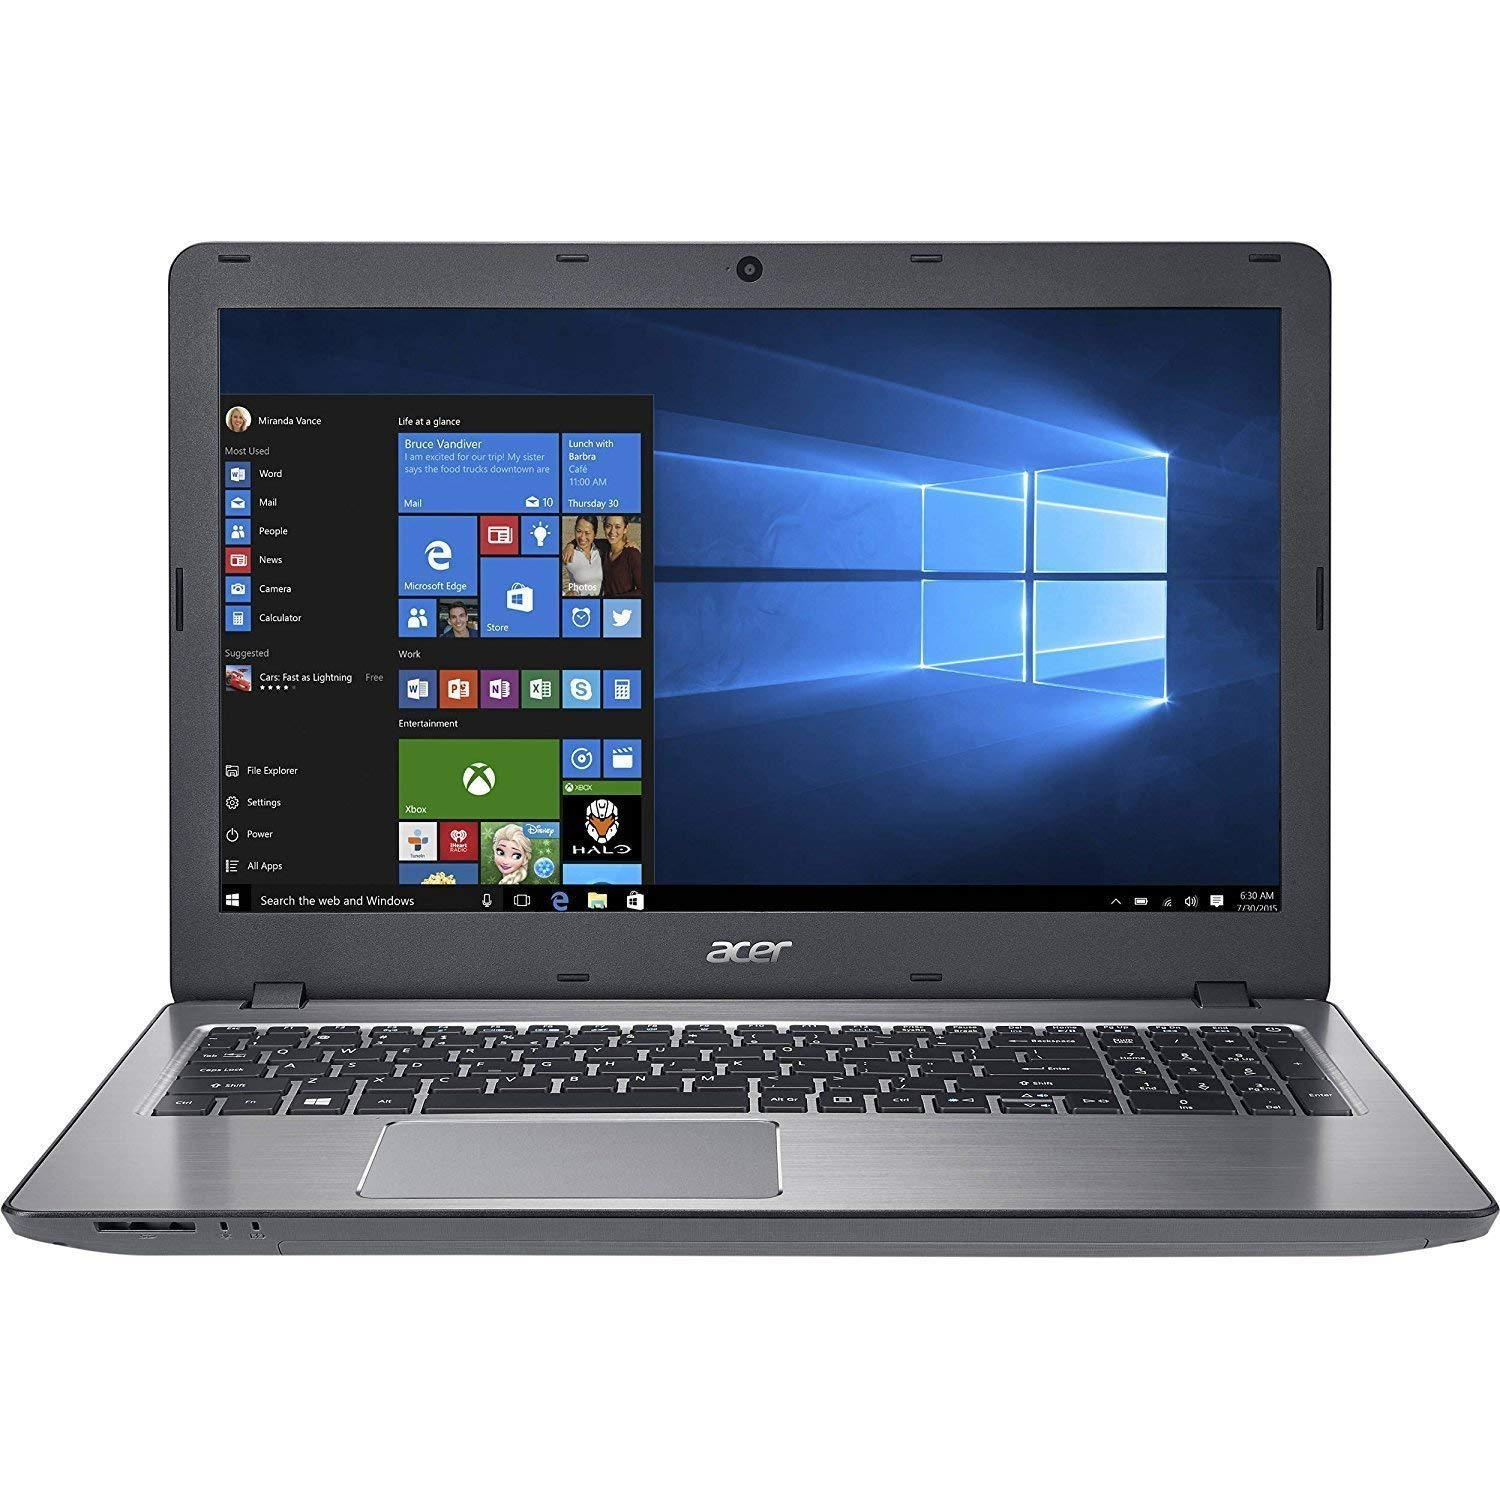 Acer Aspire F5-573G-57TQ Full HD Notebook